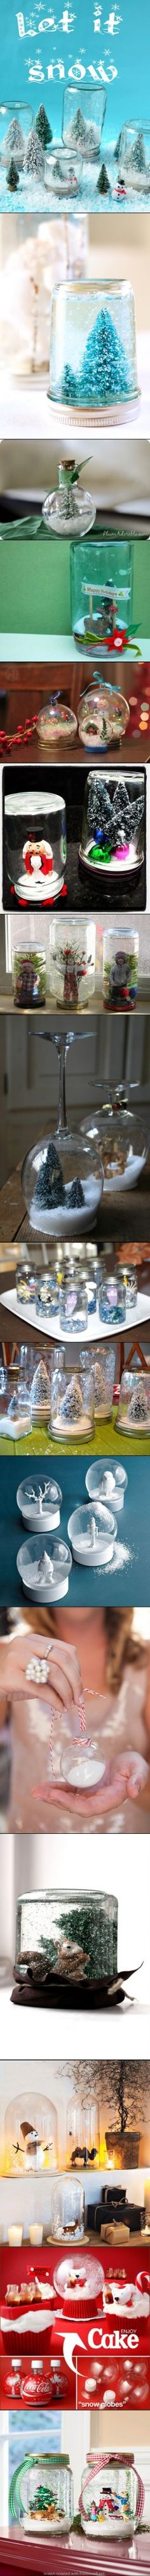 DIY Snow Globes. DIY projects For Christmas.